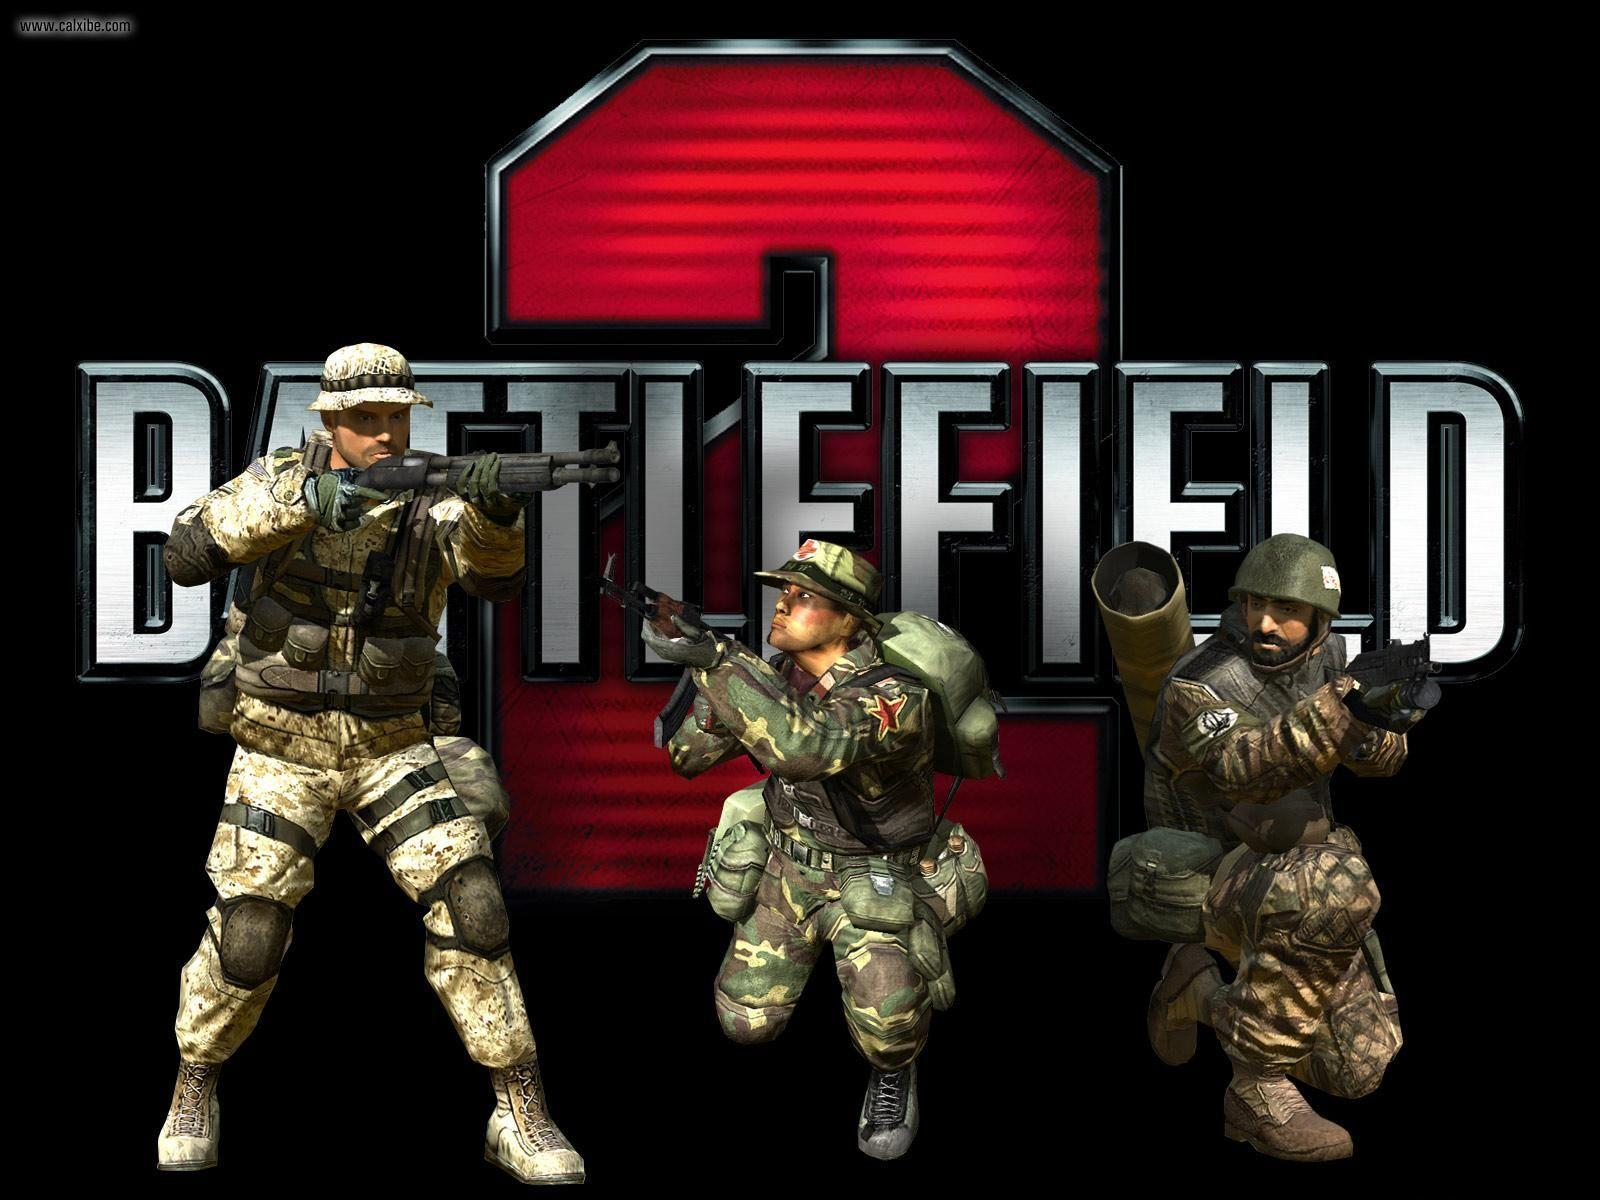 Games: Battlefield 2, picture nr. 20913